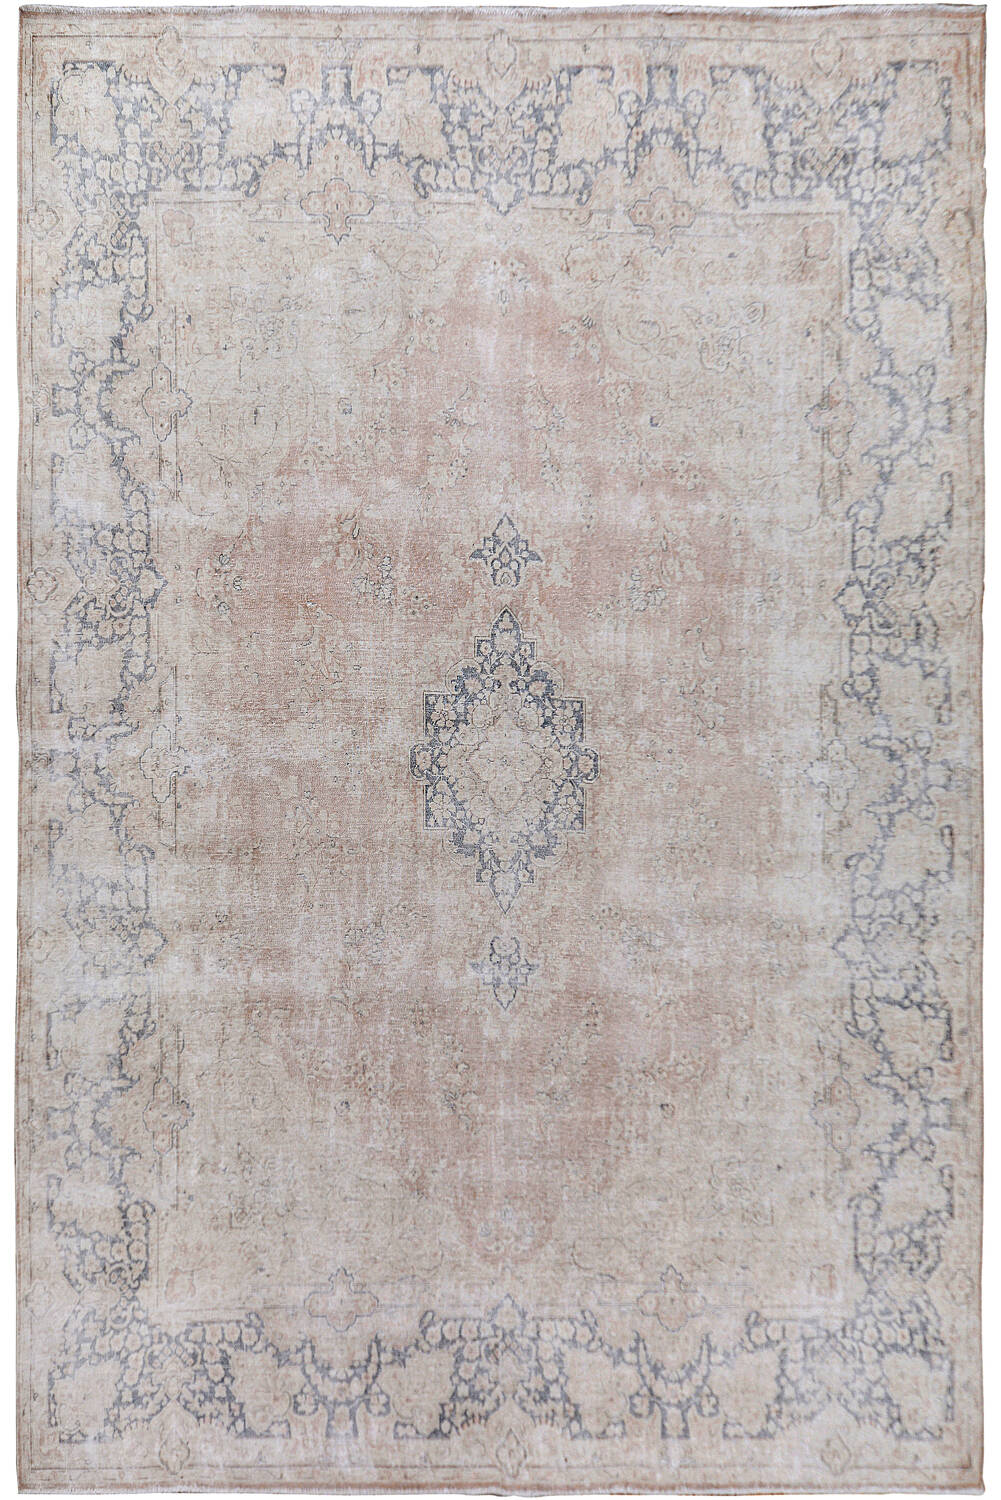 Antique Distressed Floral Kerman Persian Muted Area Rug 10x13 image 1